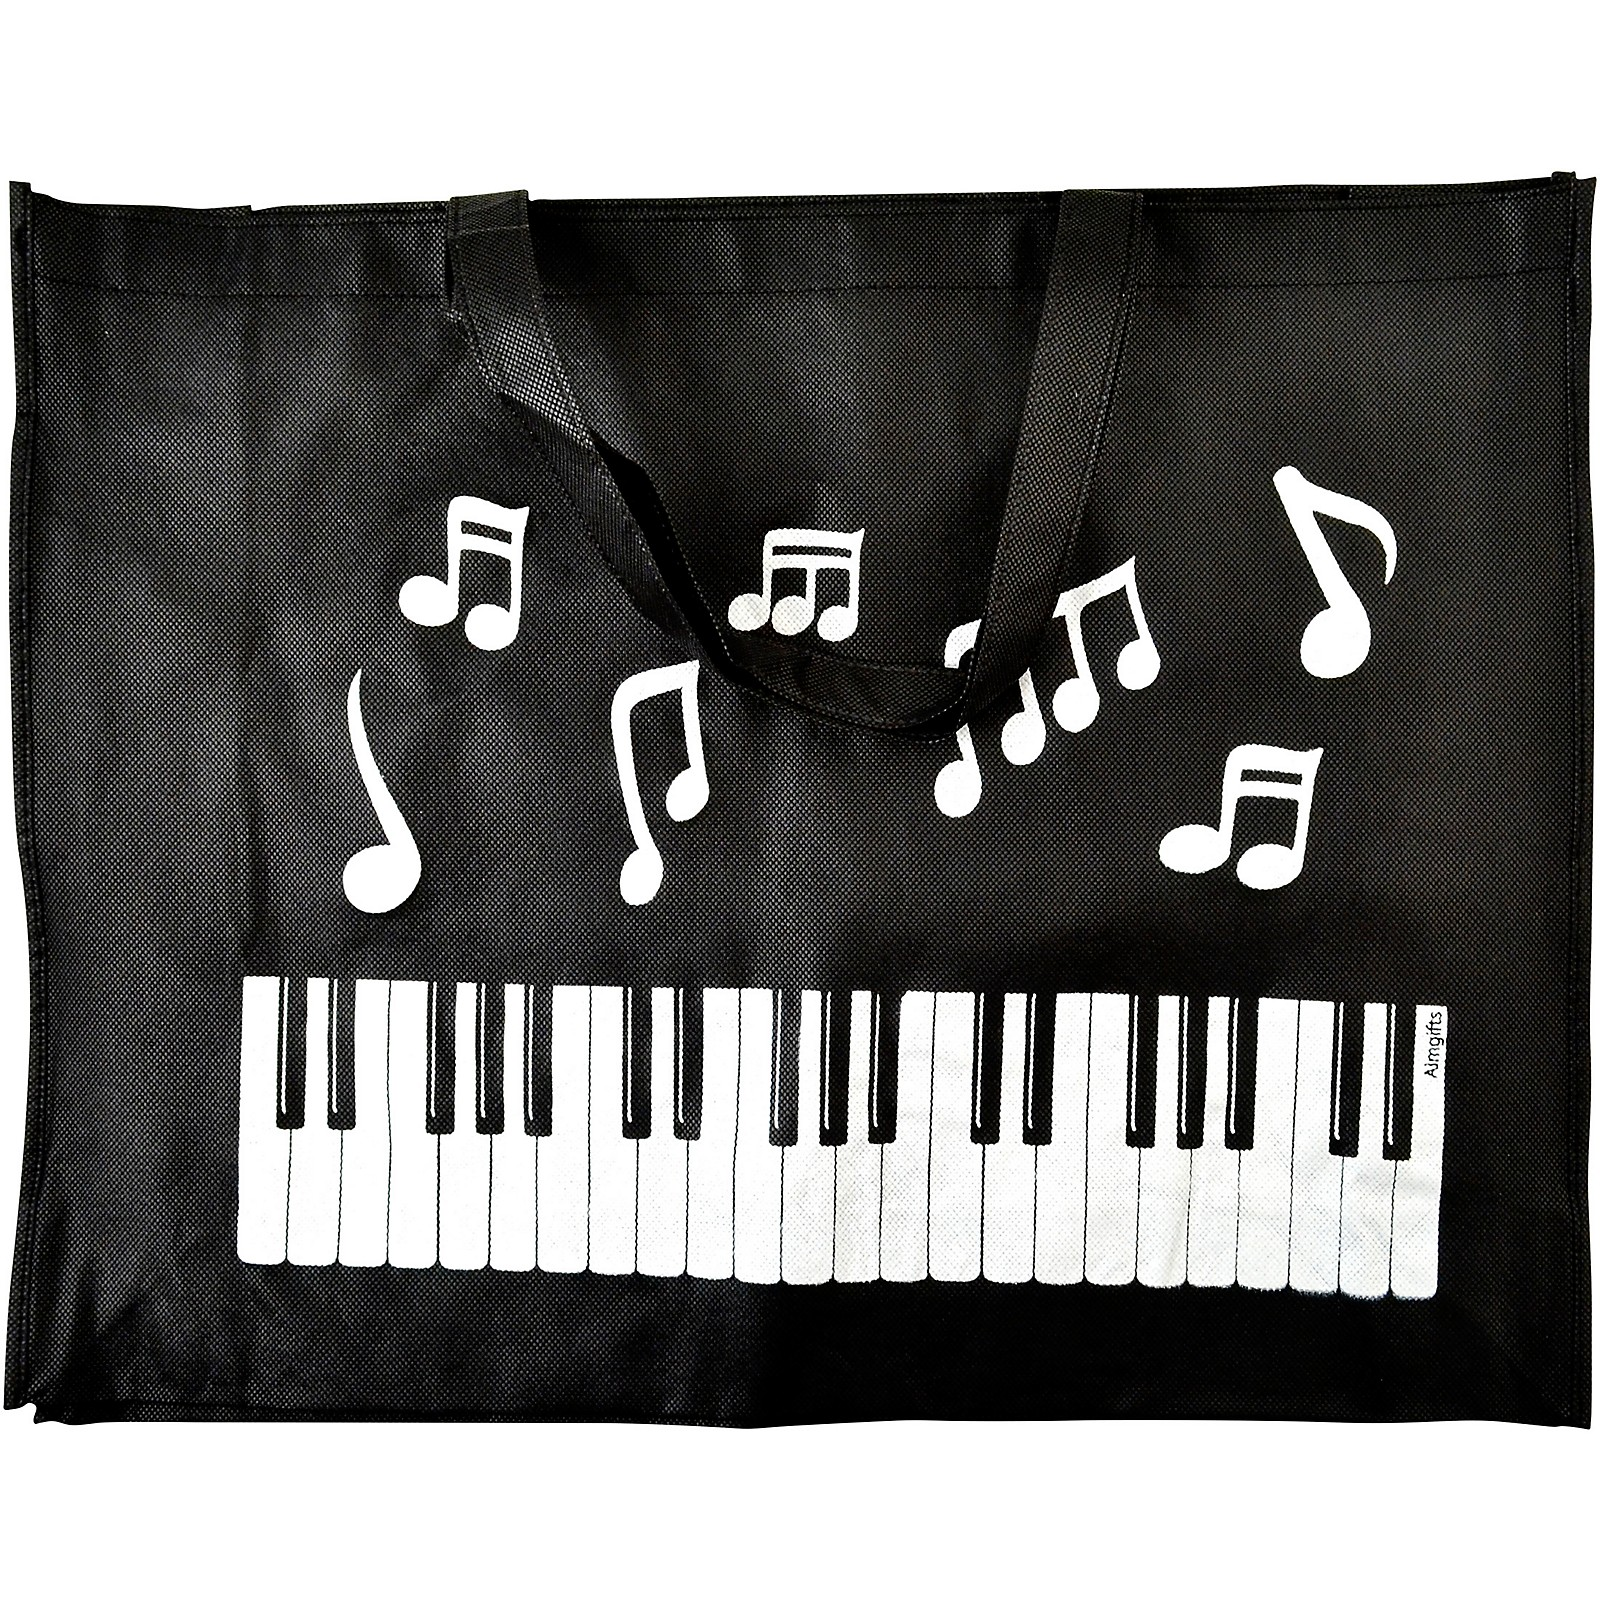 AIM Keyboard Notes Reusable Black Tote Bag